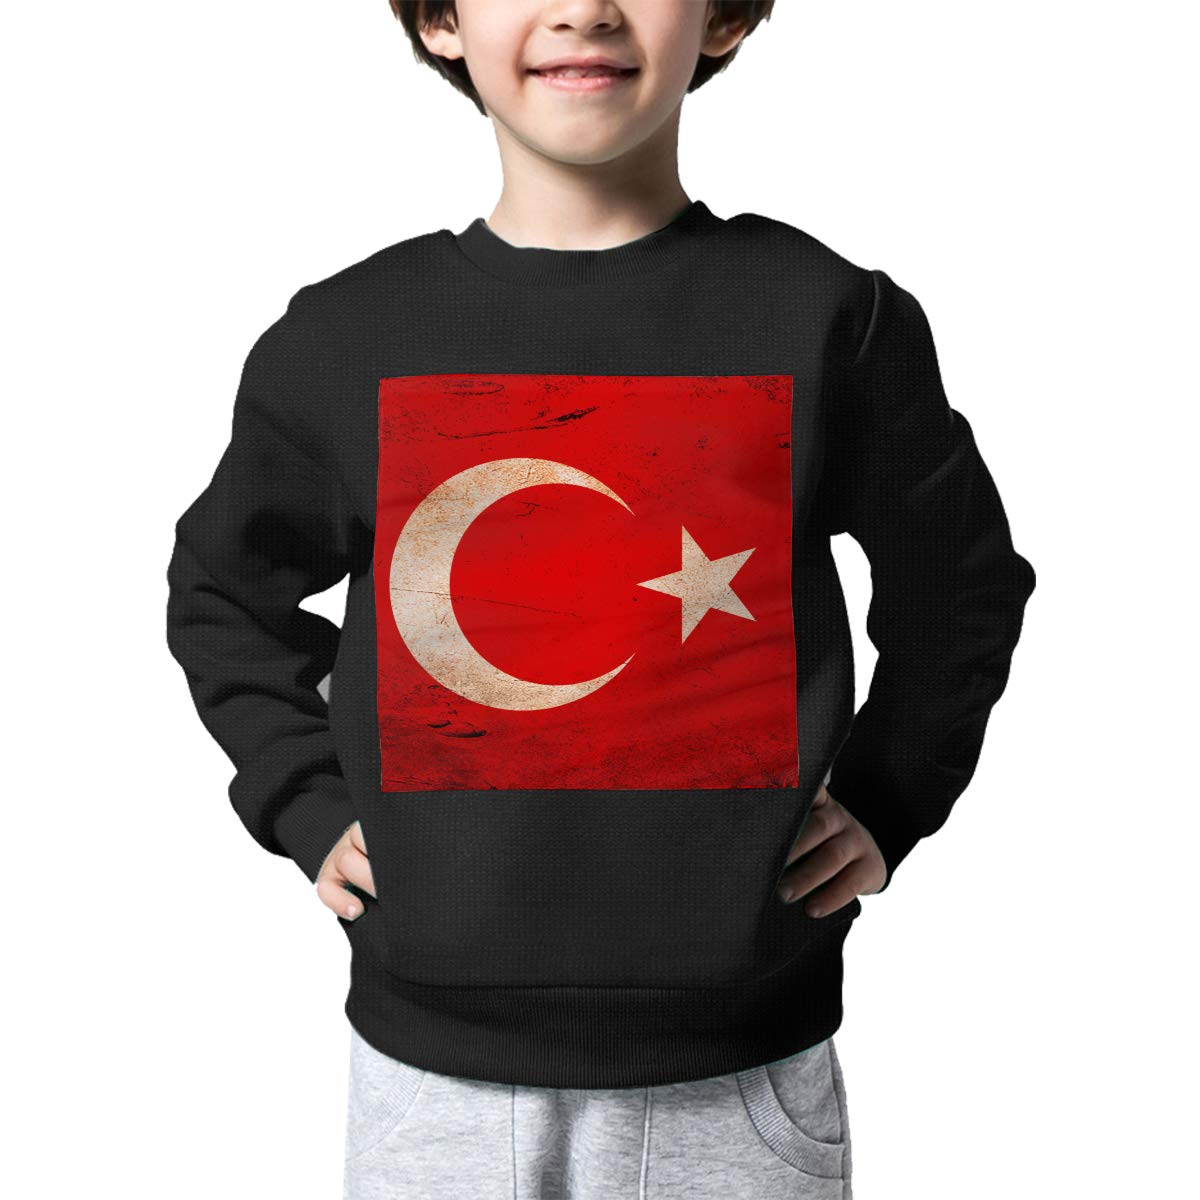 Boys Girls Vintage Turkey Flag Lovely Sweaters Soft Warm Childrens Sweater